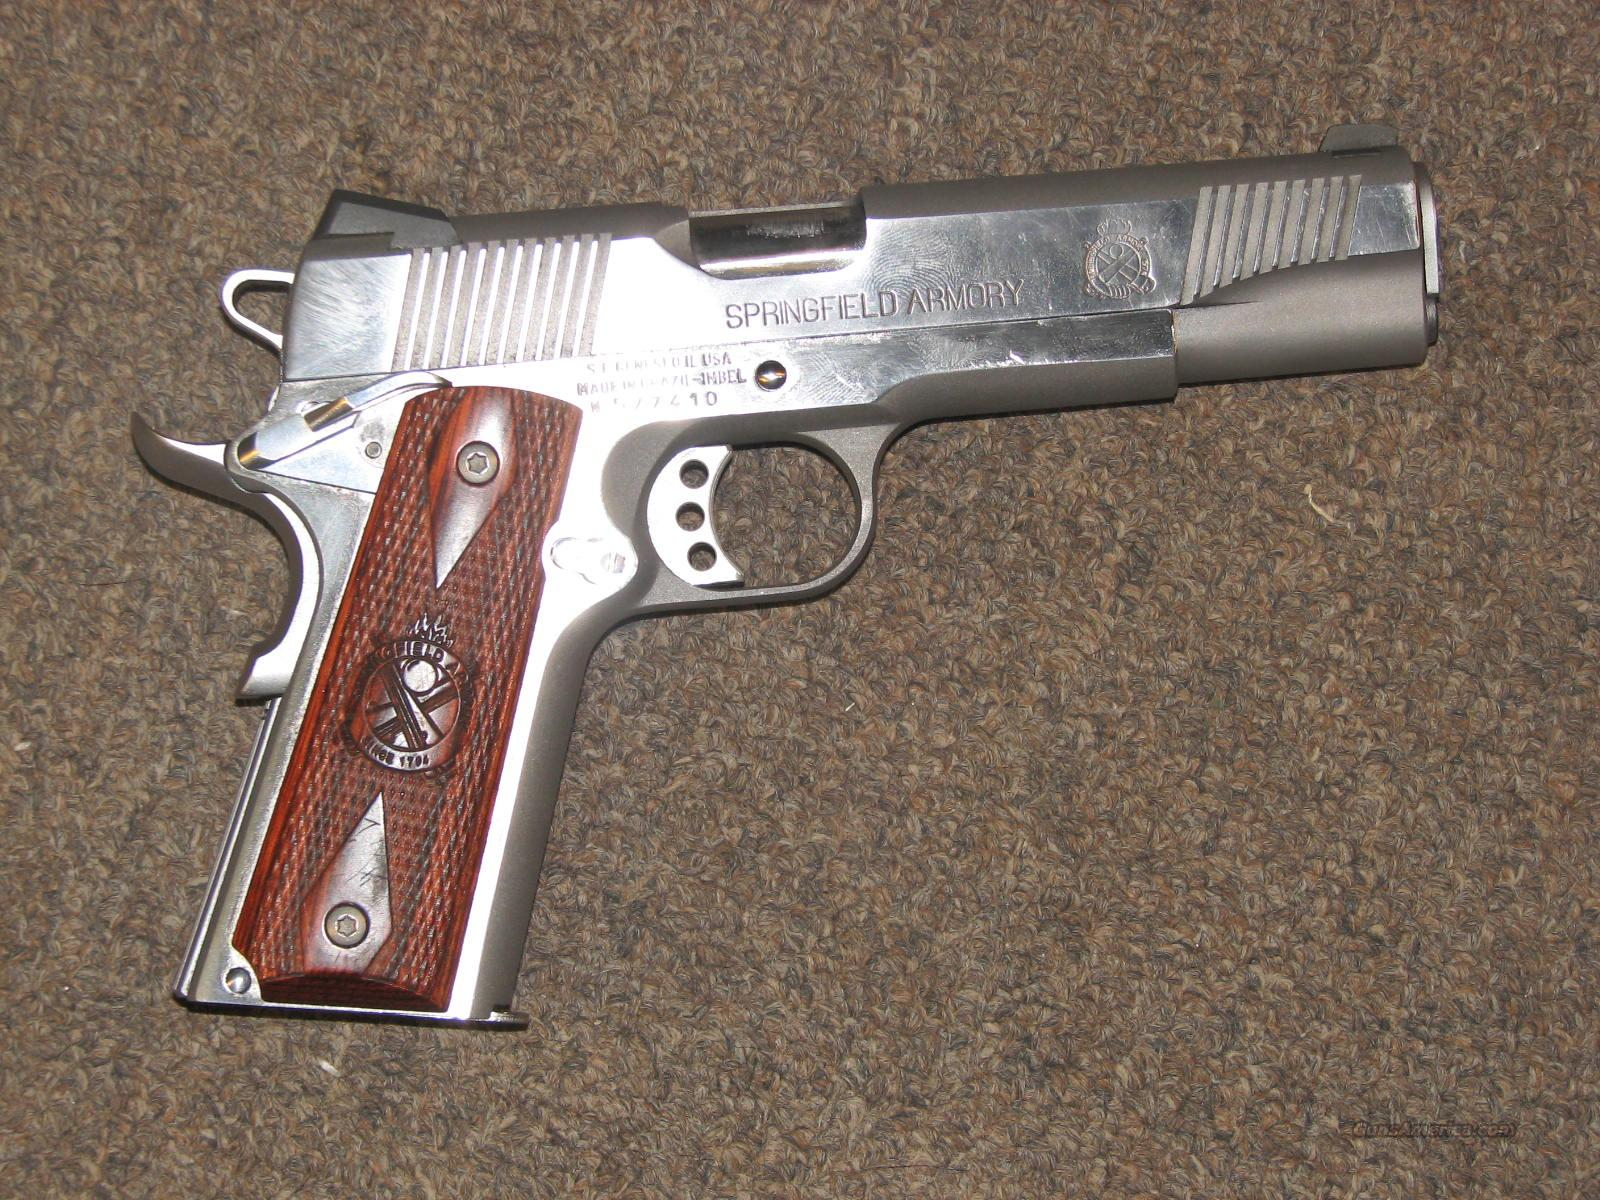 SPRINGFIELD 1911-A1 LOADED STAINLESS .45 ACP  Guns > Pistols > Springfield Armory Pistols > 1911 Type